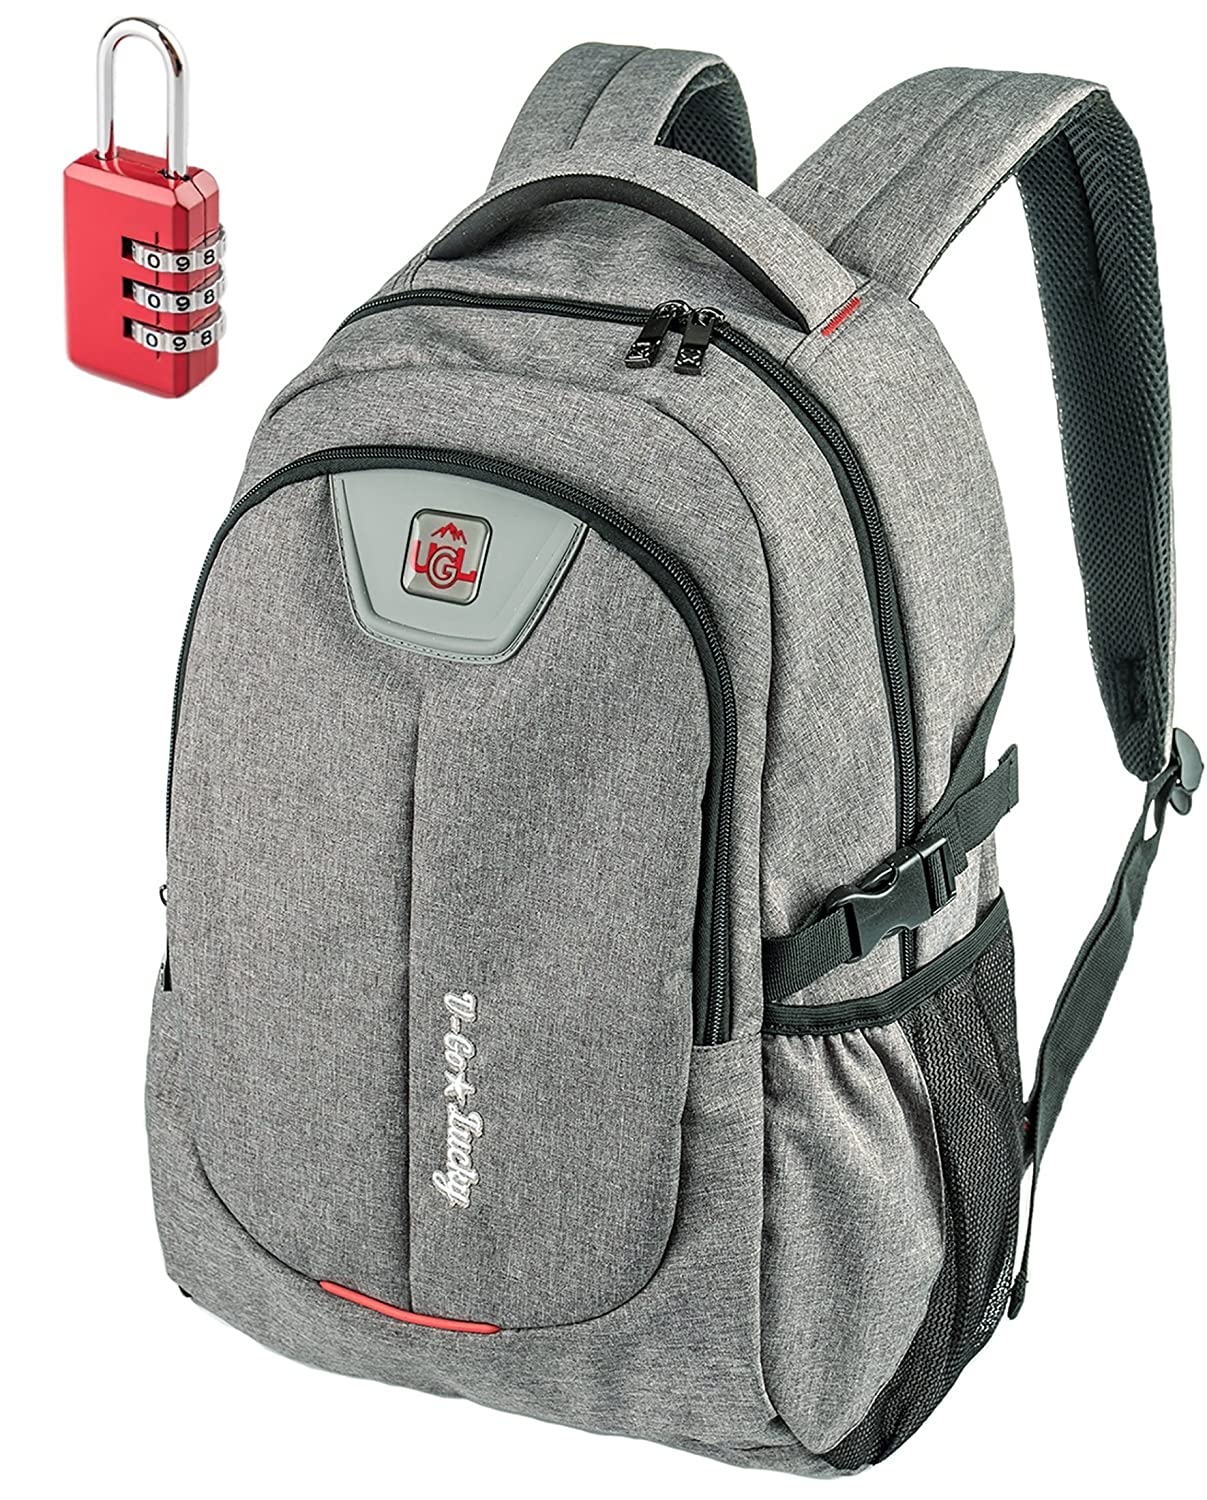 f474ecf98b96 This unisex waterproof laptop has sufficient space to hold any laptop – it  may be one of the best laptop bags around. The bag is made of durable  canvas ...